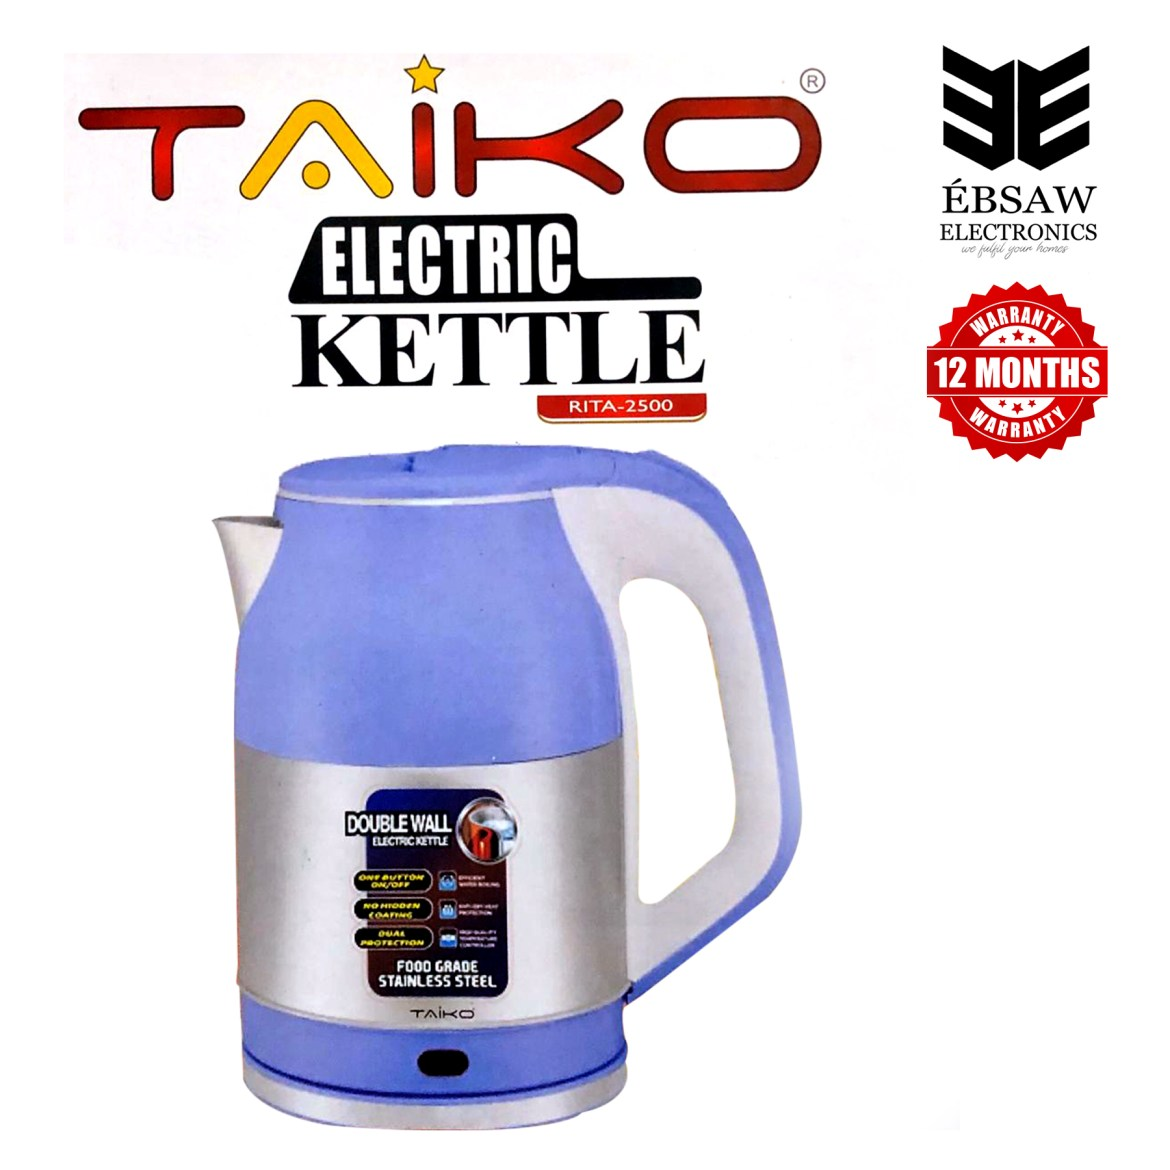 TAIKO Electric Kettle Double Wall 2.5L - RITA-2500: Buy Sell Online @ Best  Prices in SriLanka | Daraz.lk